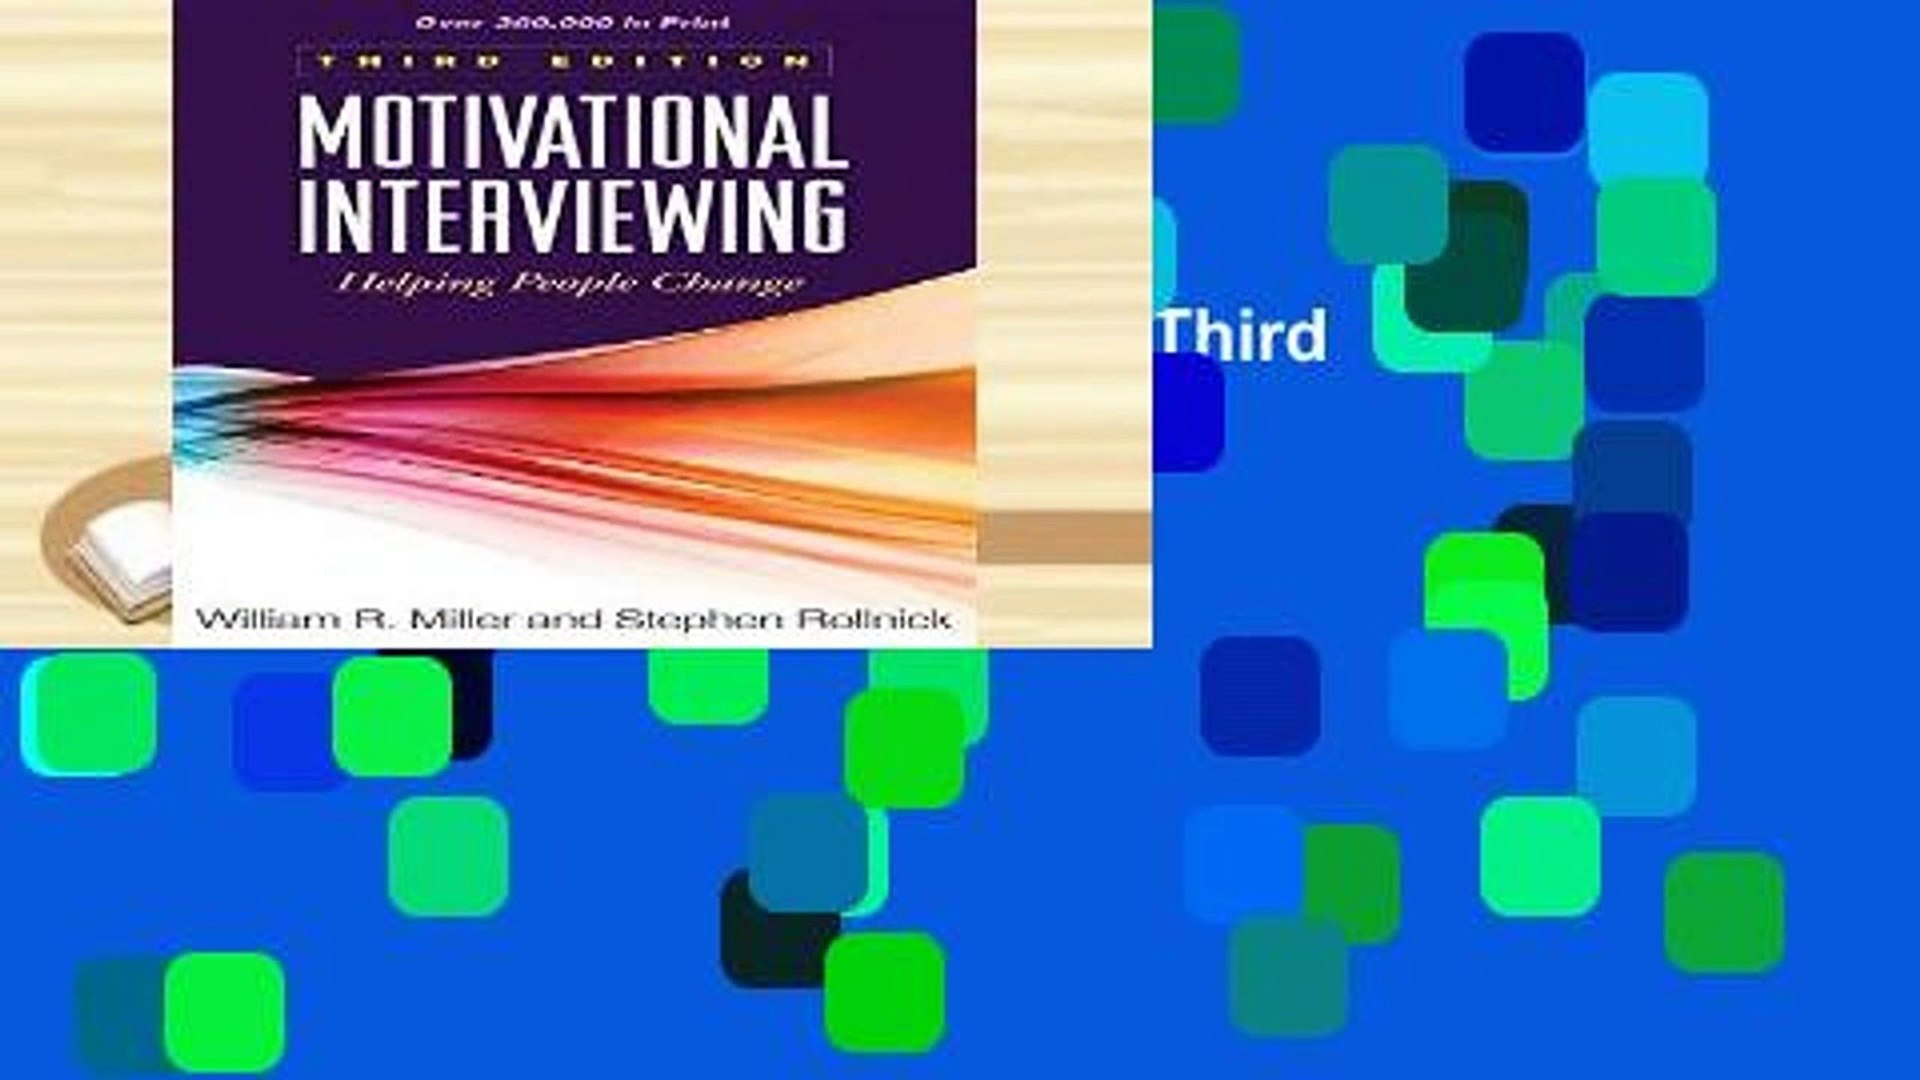 View Motivational Interviewing, Third Edition: Helping People Change (Applications of Motivational